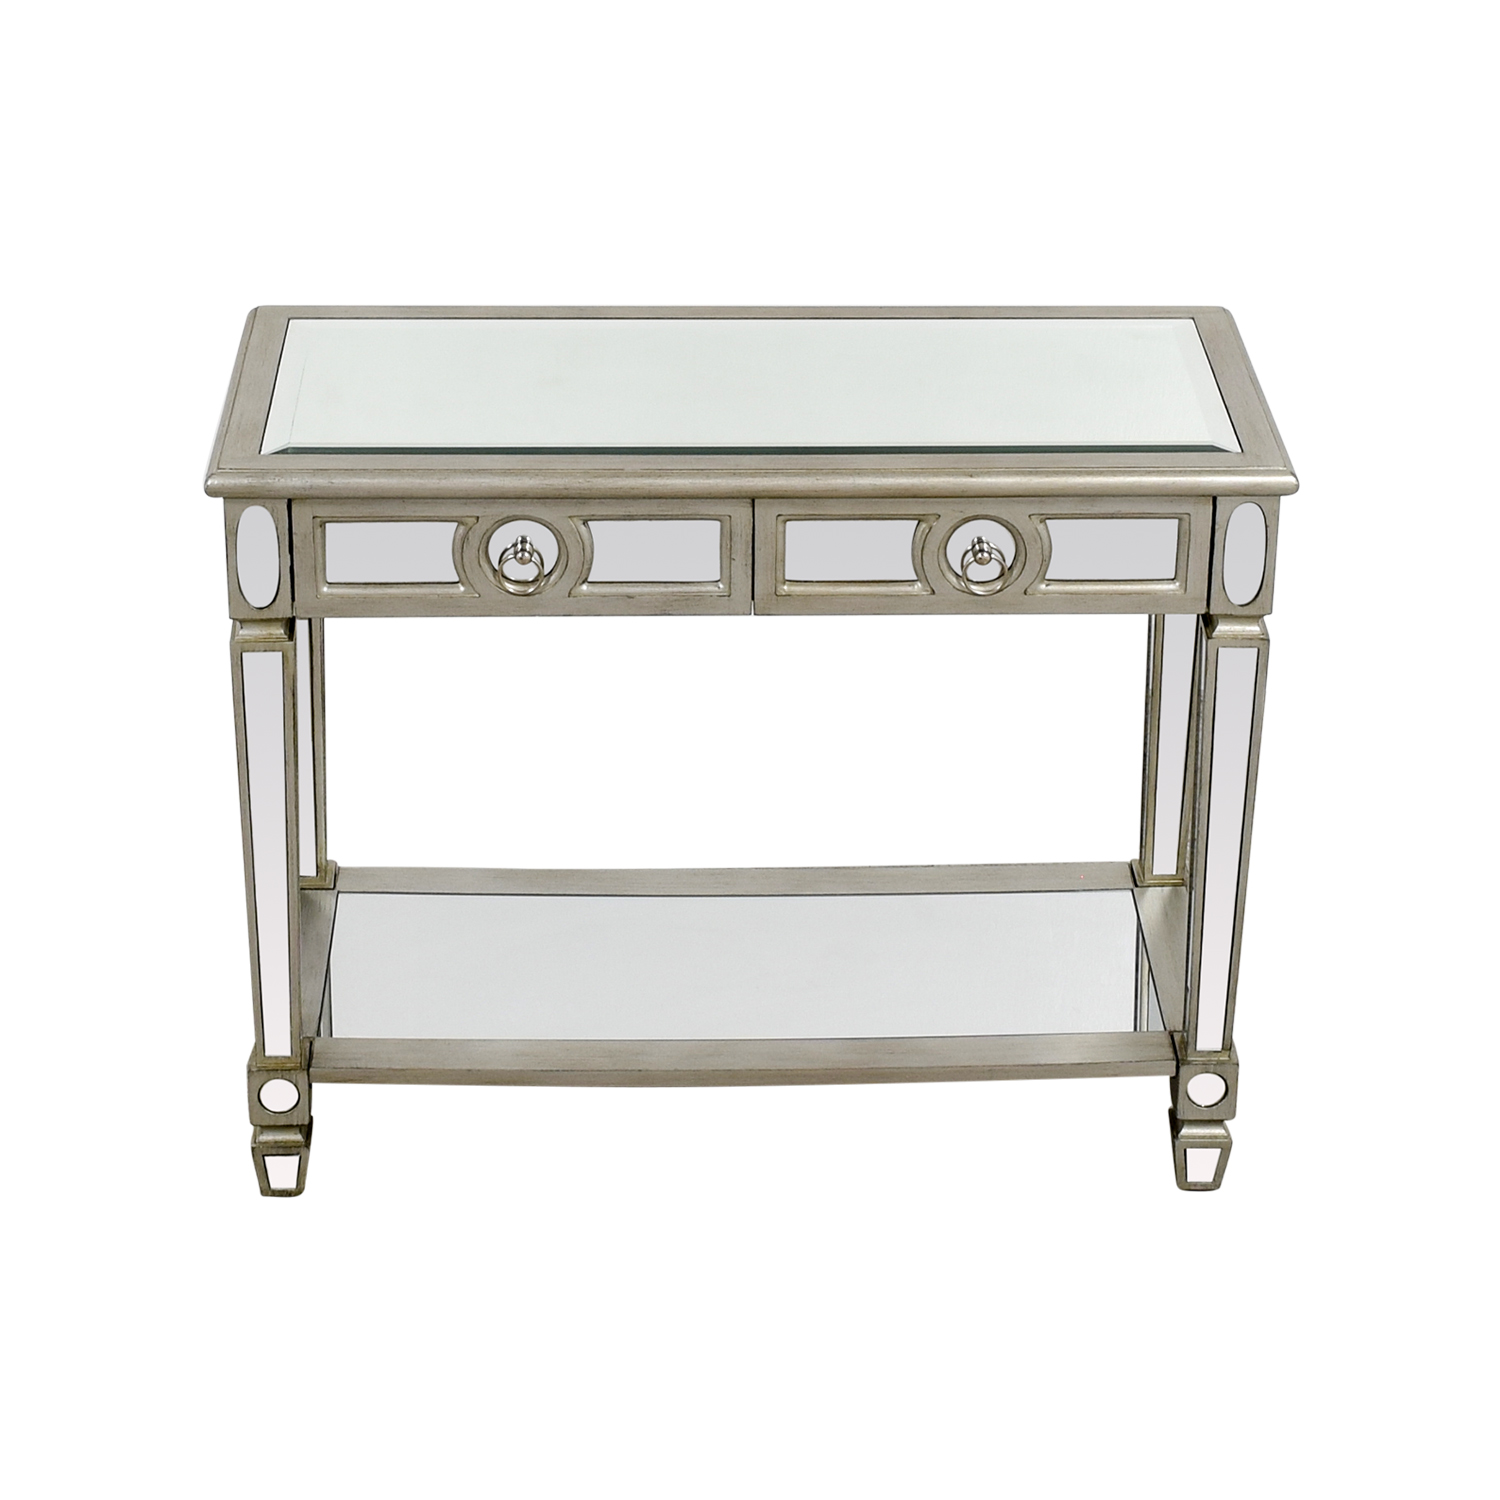 Monarch Furniture Mirrored Sofa Console Table sale